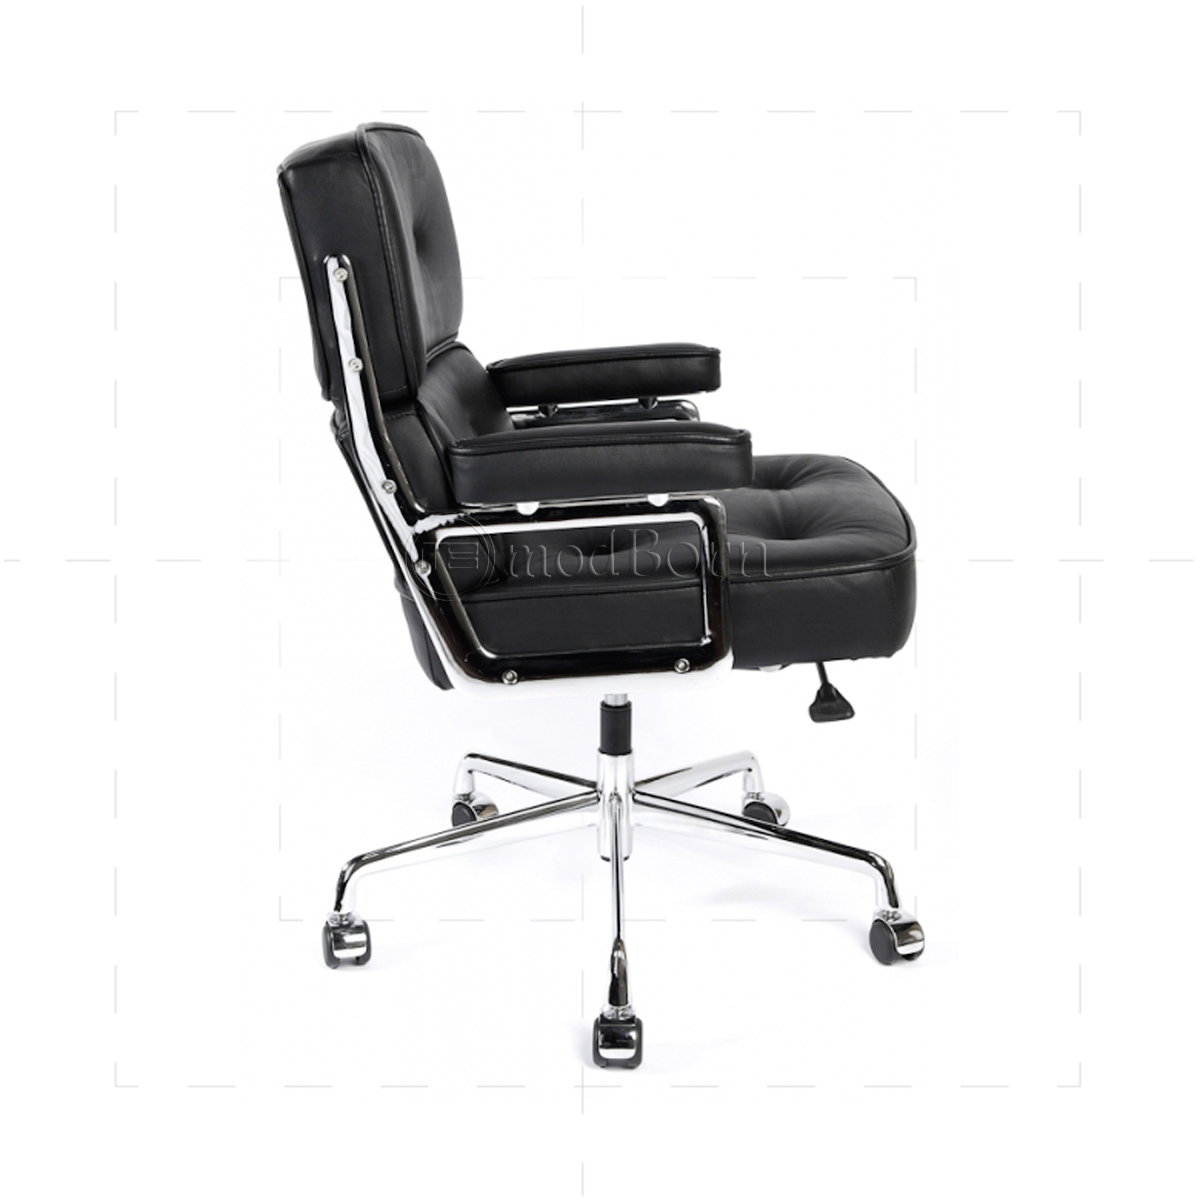 EA104 Eames Style Office Lobby Black Leather Executive  : charles eames es104 office chair 2 1200x1200 from www.modborn.com size 1200 x 1200 jpeg 329kB